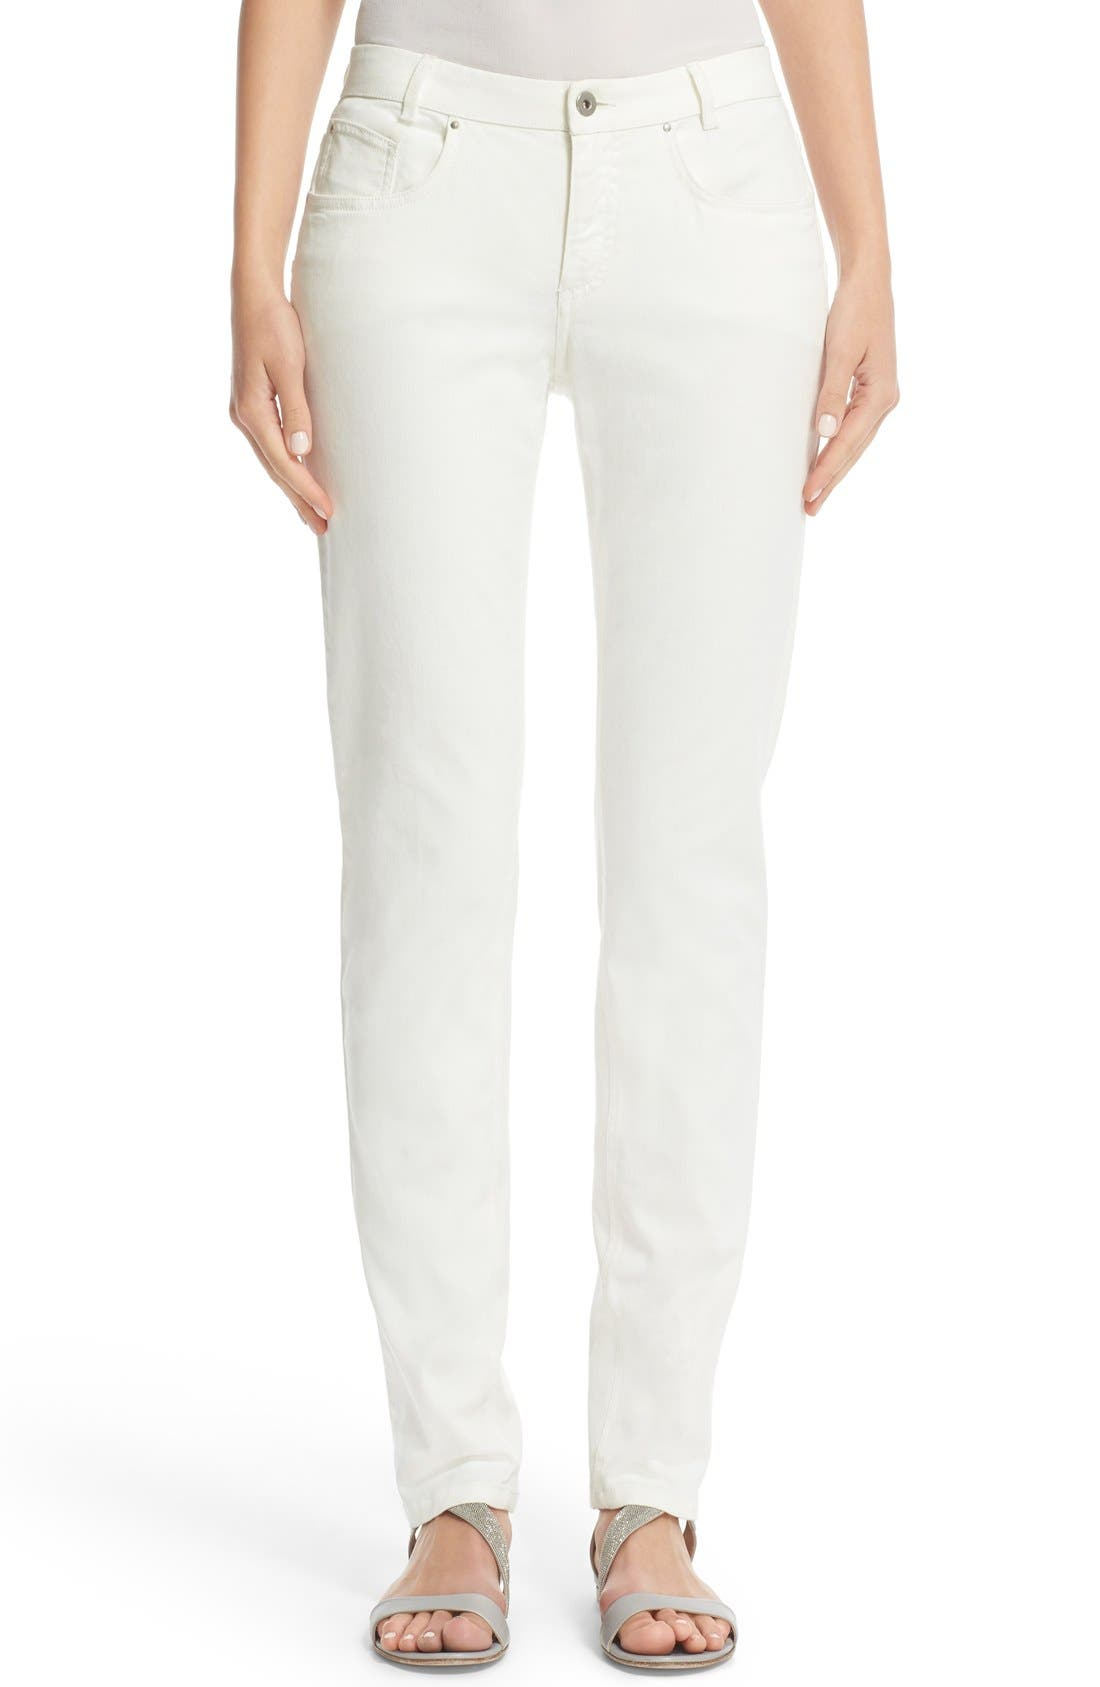 FABIANA FILIPPI Stretch Jeans